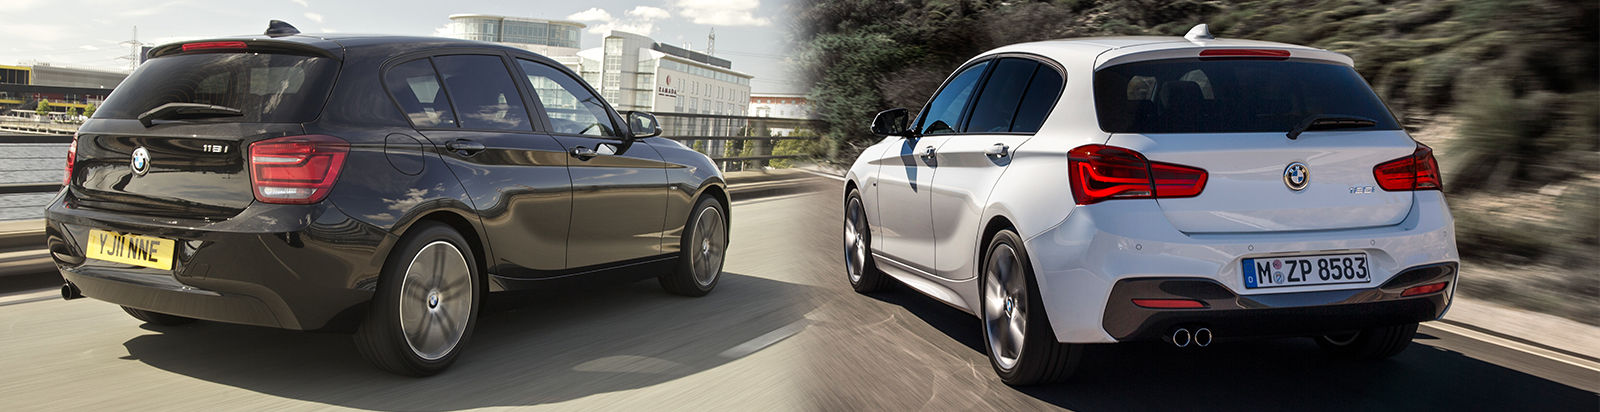 BMW Series Facelift Old Vs New Compared Carwow - Bmw 1 series 2015